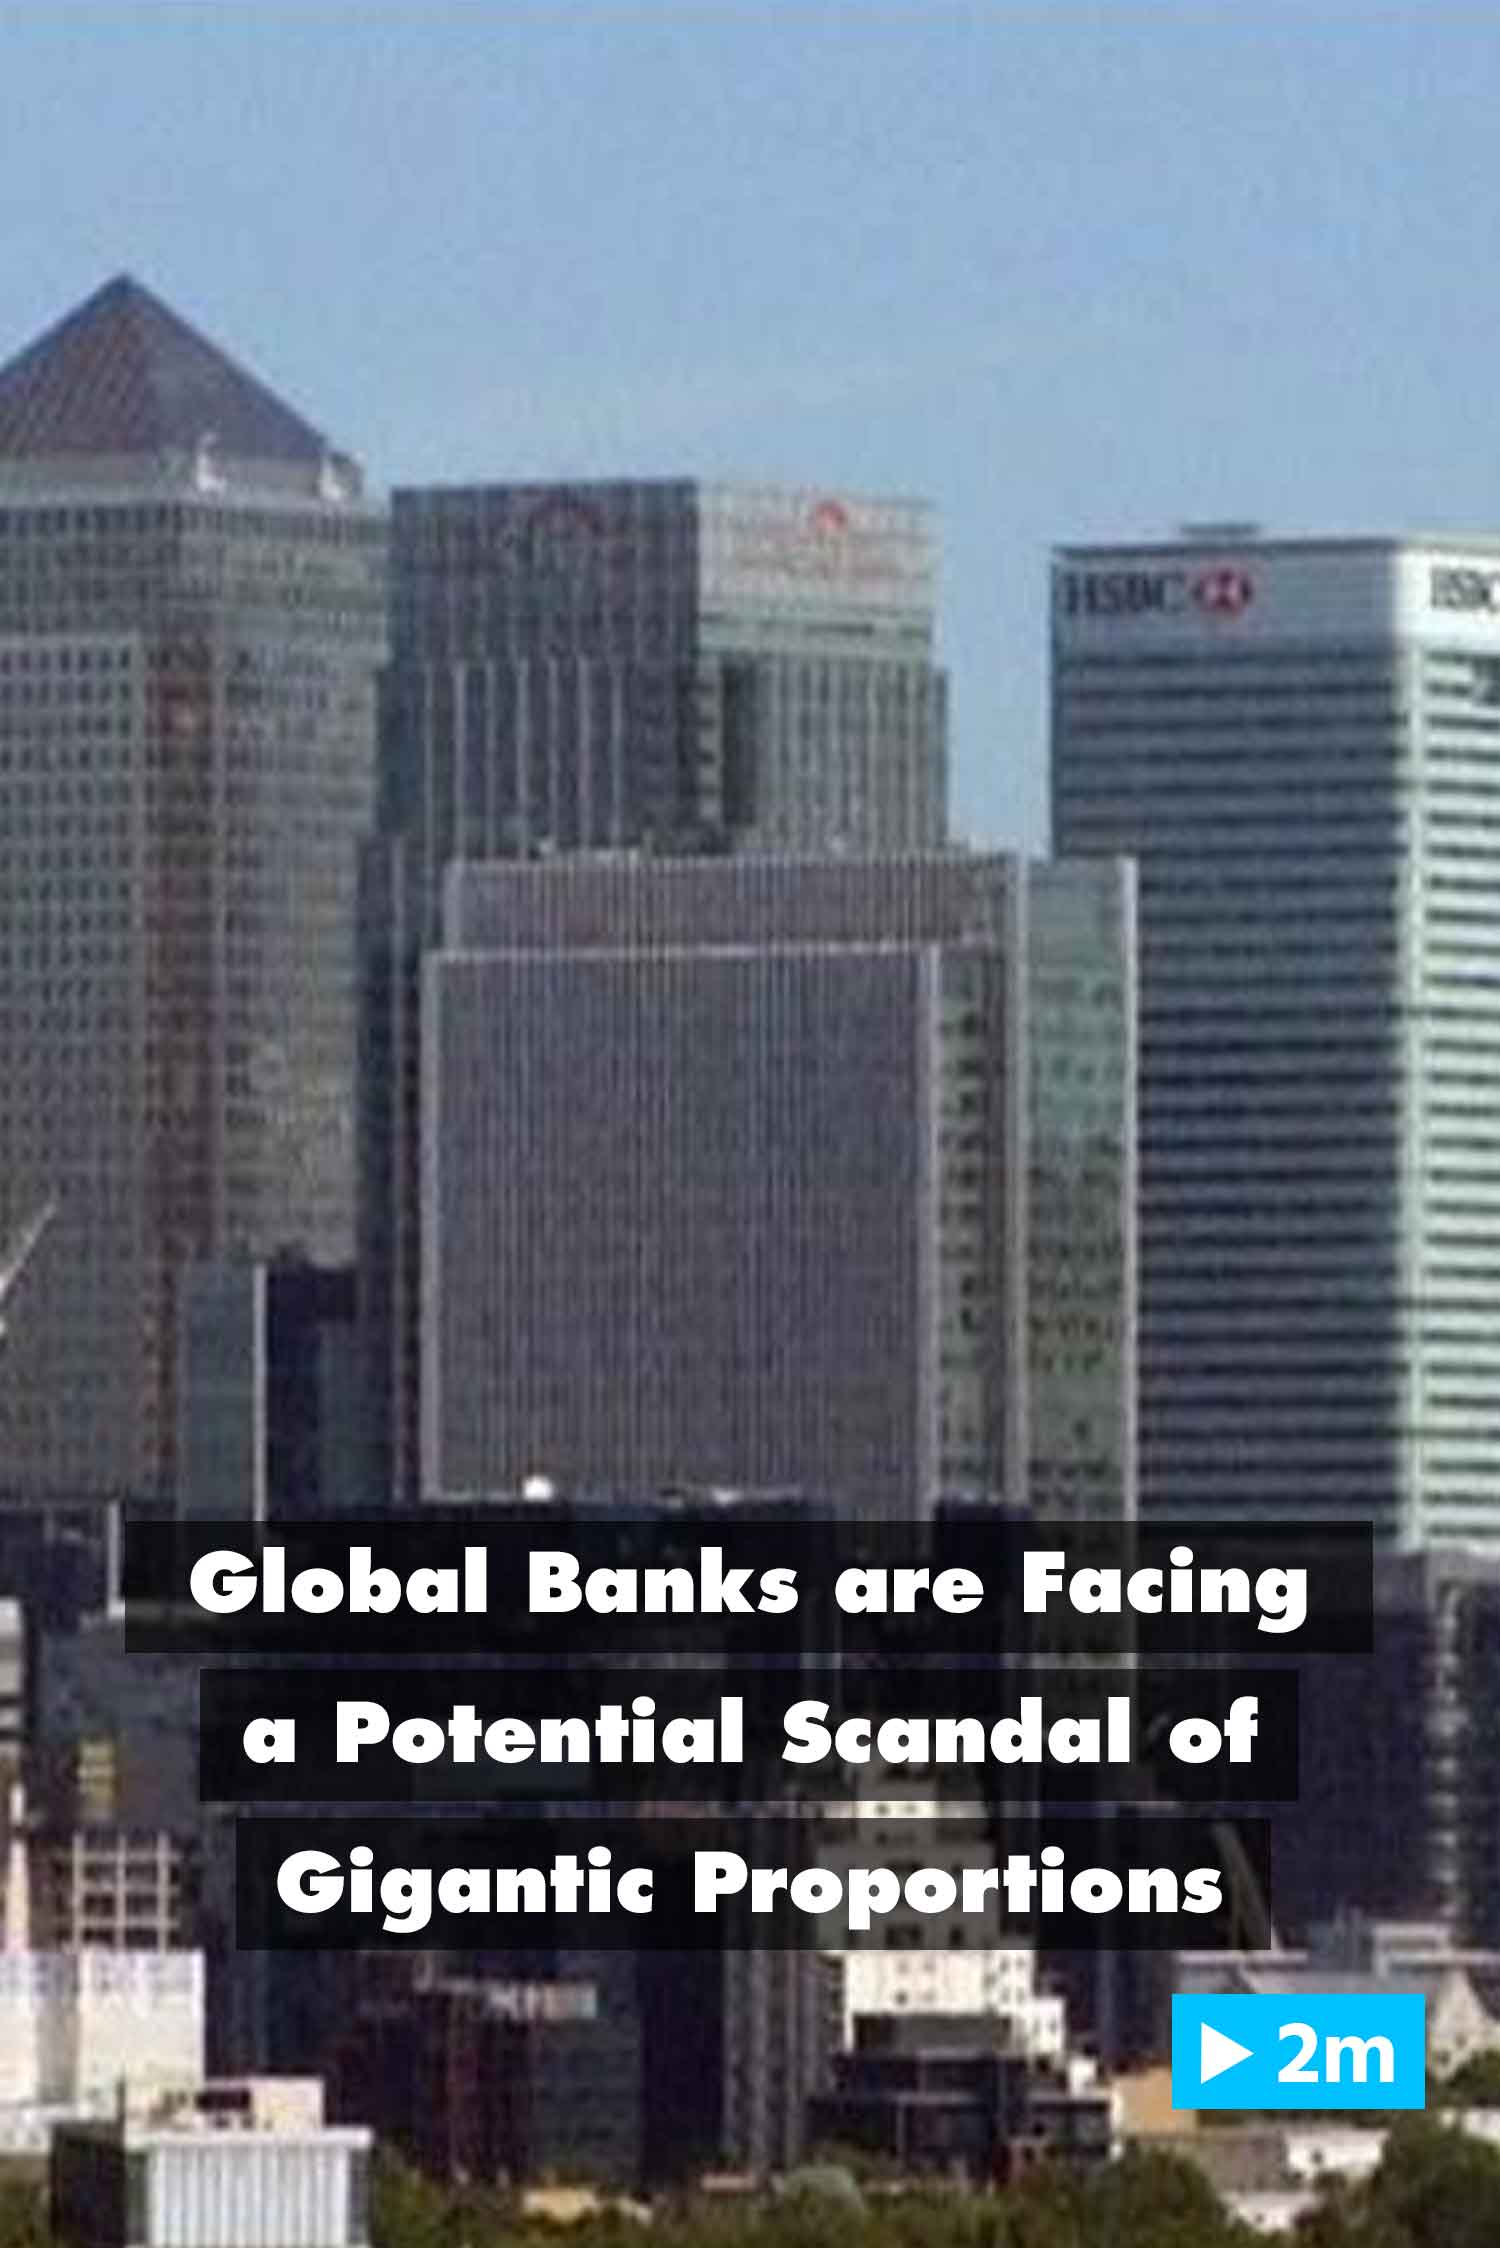 Editors's Choice: Global banks are facing a potential scandal of gigantic proportions